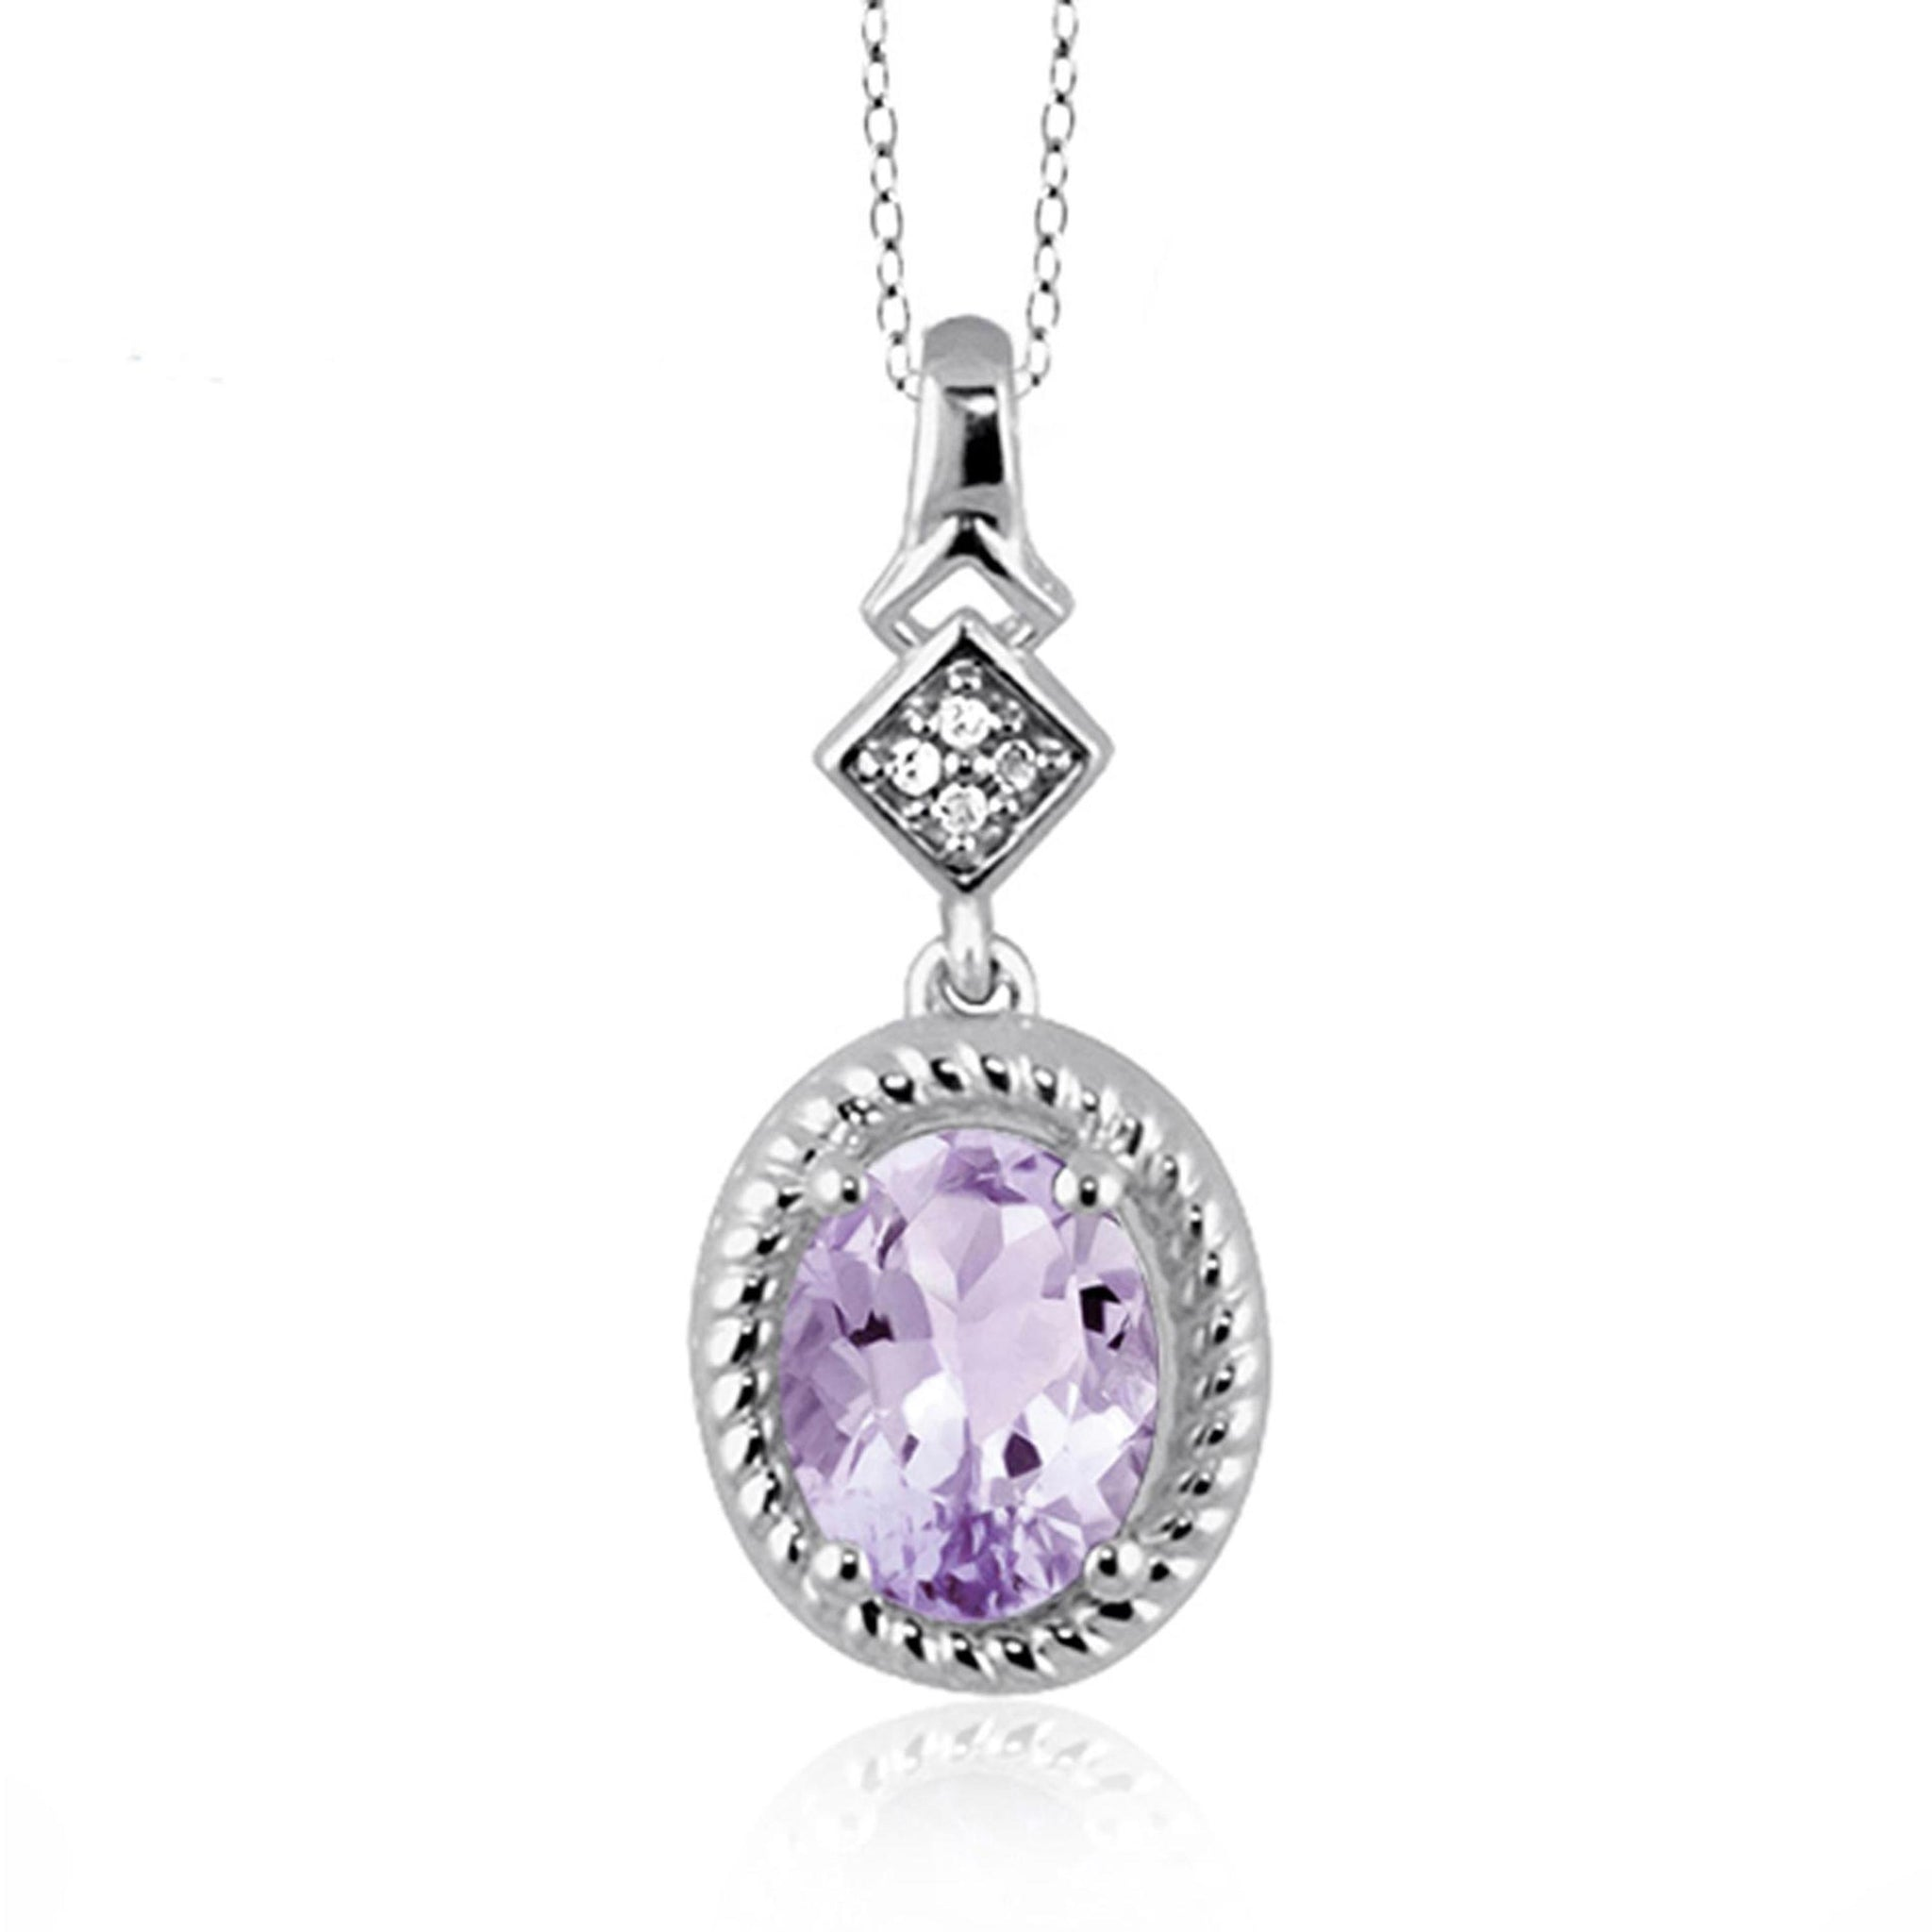 JewelonFire 1.00 Carat T.G.W. Pink Amethyst And White Diamond Accent Sterling Silver Pendant - Assorted Colors